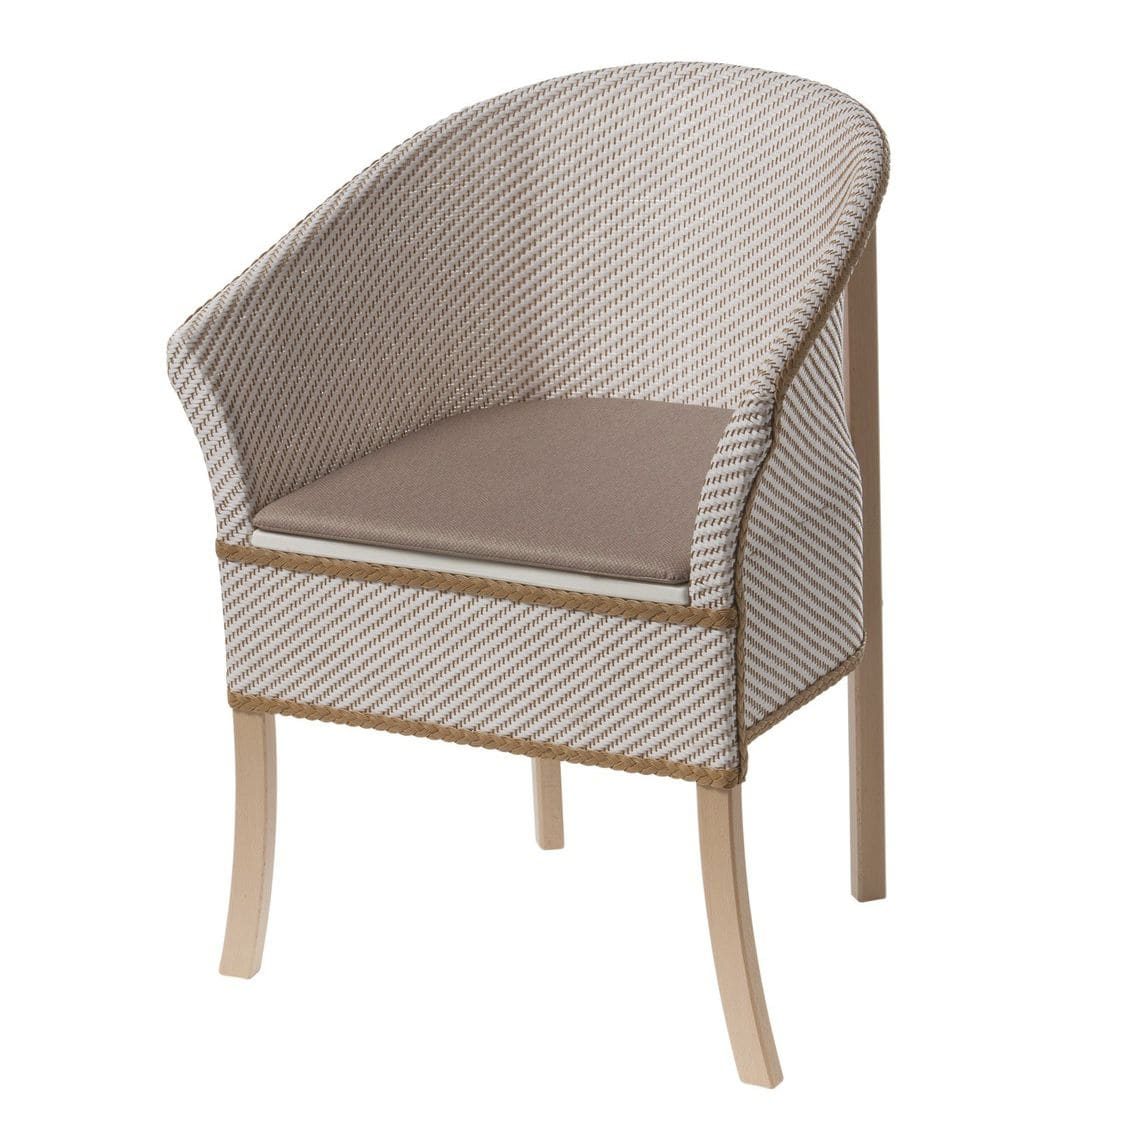 Commode Chair With Armrests   Basket Weave